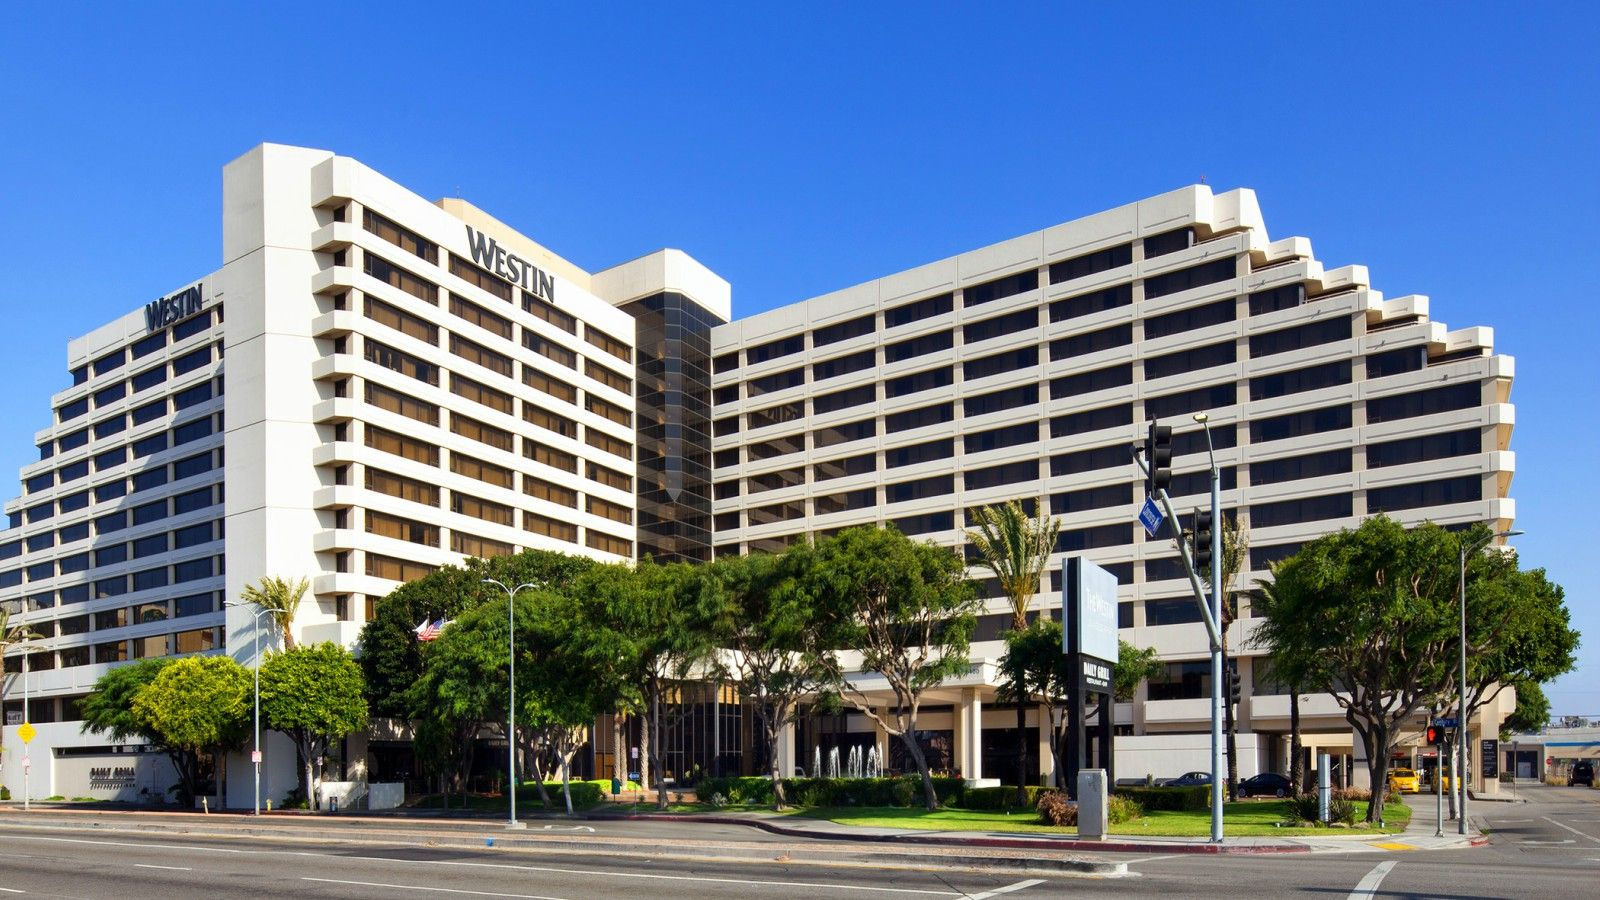 The Westin Los Angeles Airport - Hotel Features